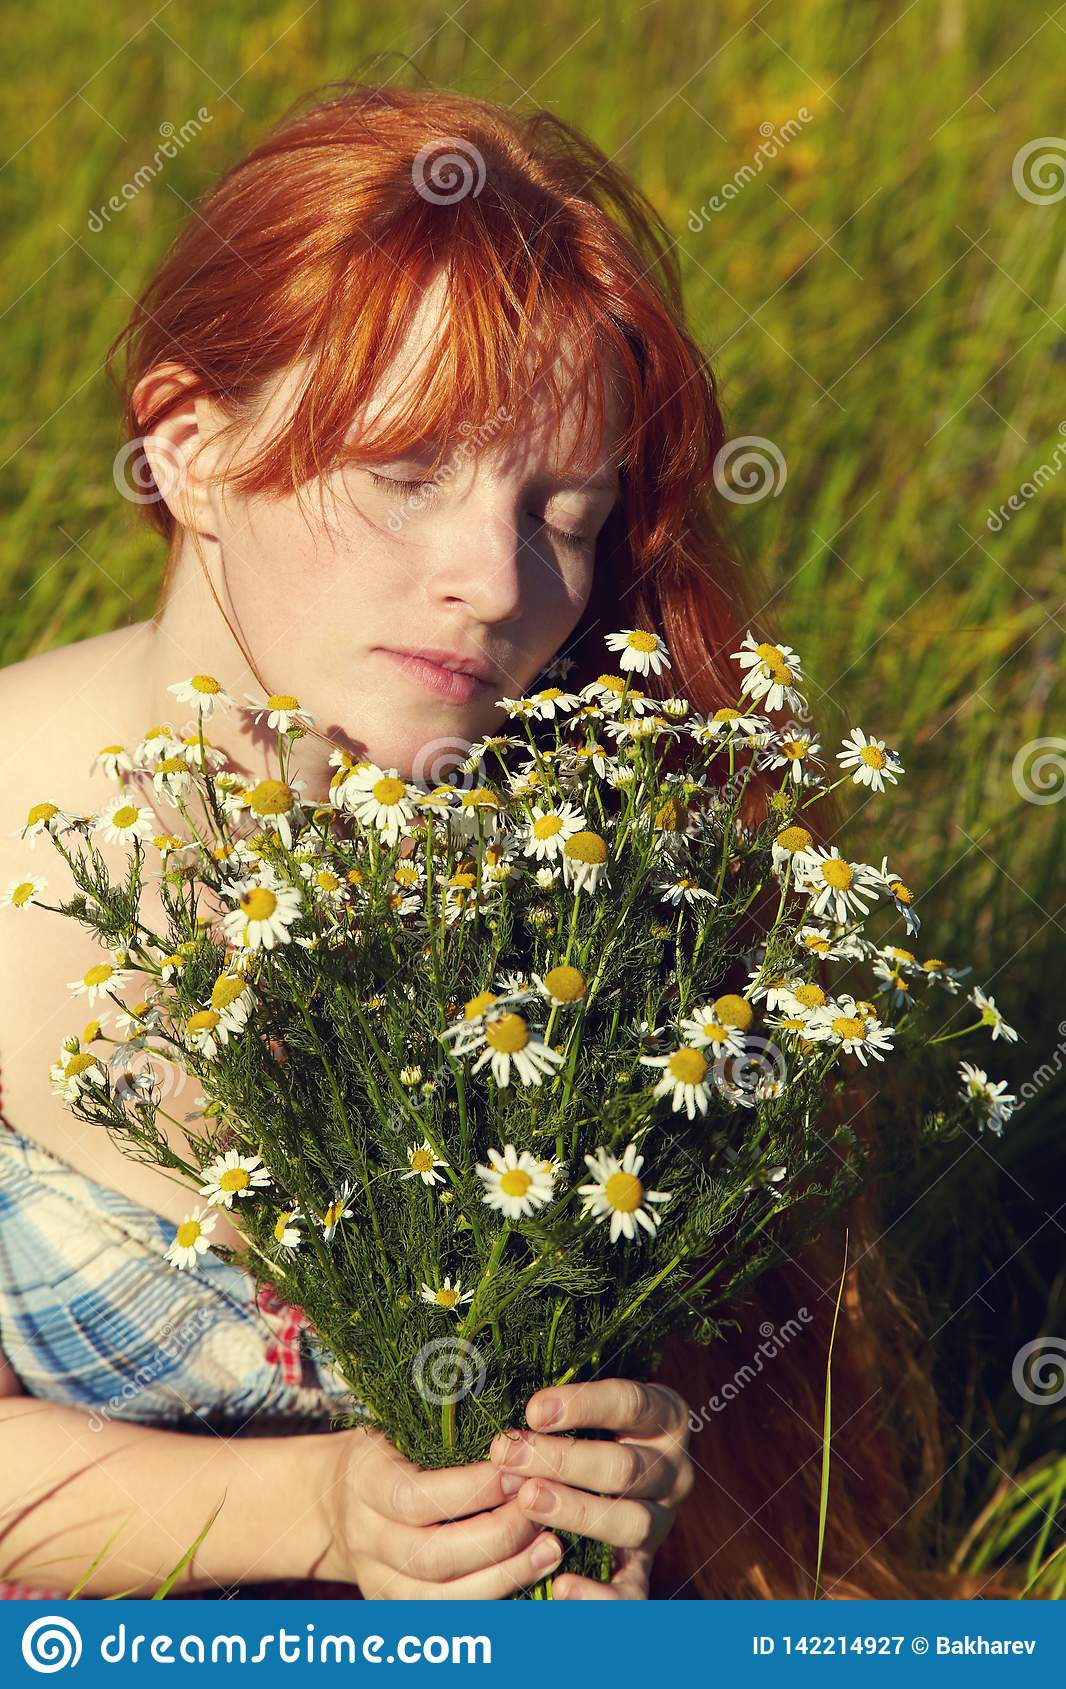 Redhead woman with a bouquet of flowers in a dress outdoors. stylish romantic young girl in field